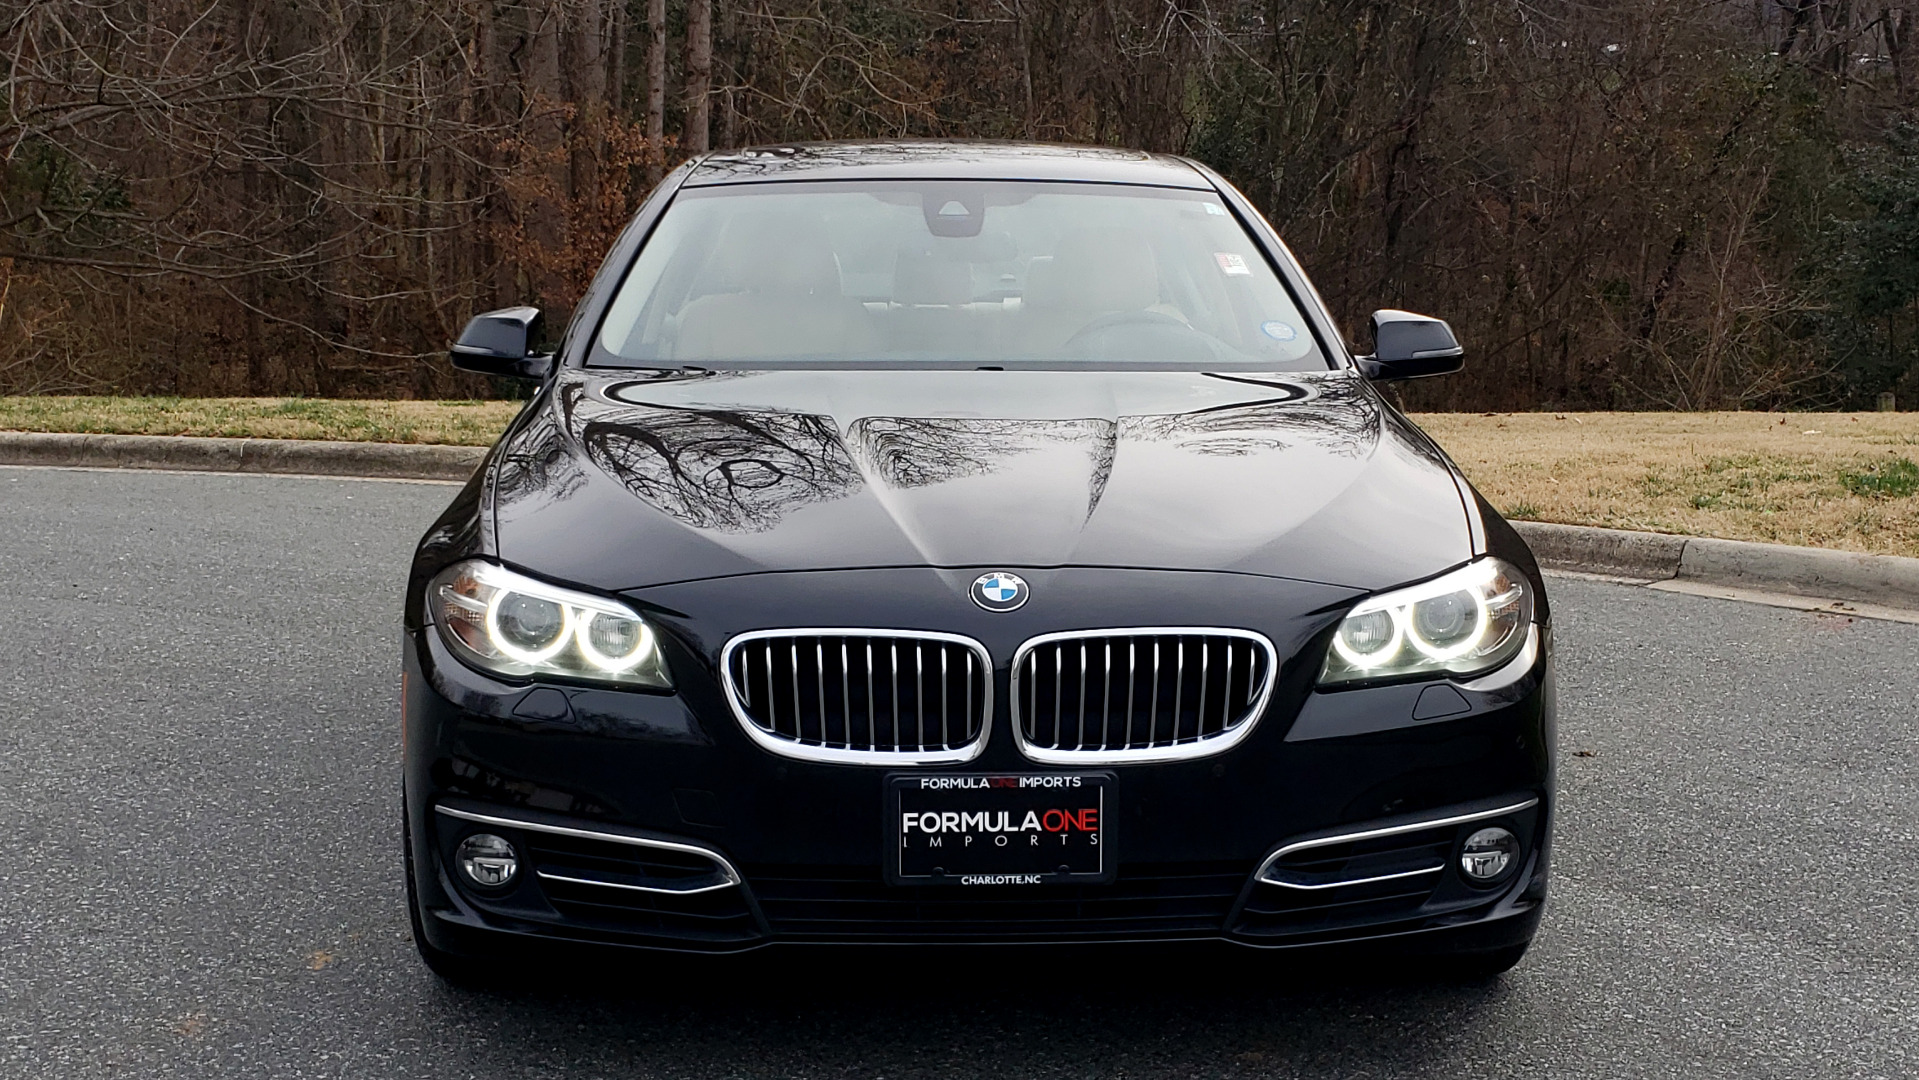 Used 2016 BMW 5 SERIES 528i XDRIVE / PREM PKG / DRVR ASST PLUS / LUXURY / COLD WTHR for sale Sold at Formula Imports in Charlotte NC 28227 23